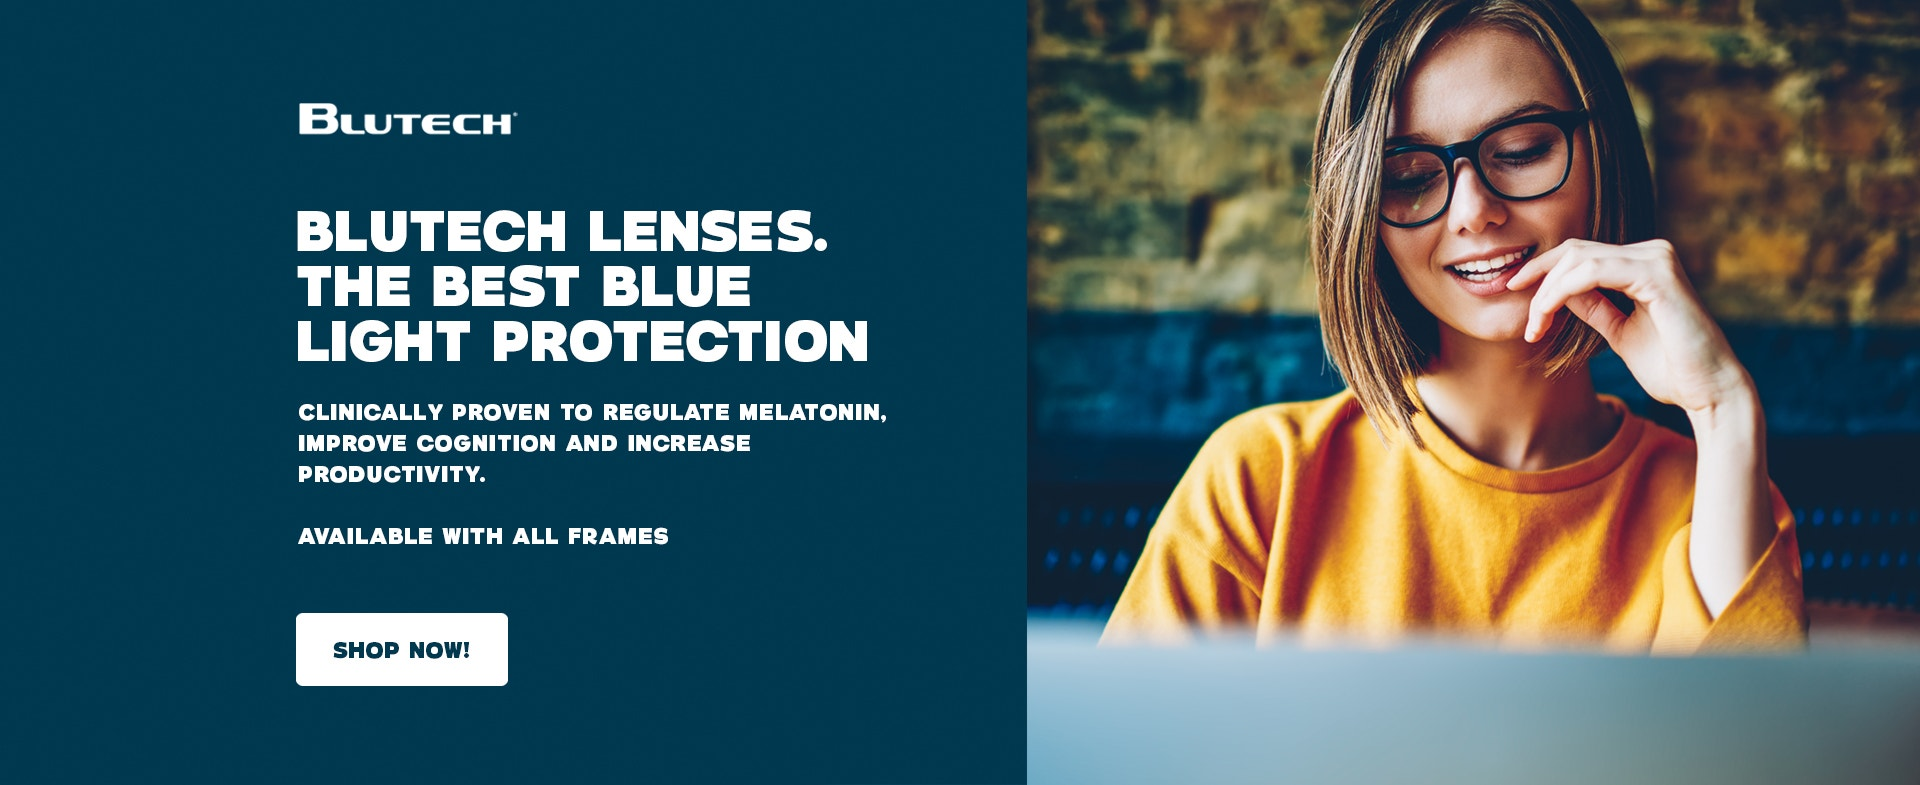 Self care includes protection from blue light to reduce digital eye strain headaches and sleep disruption